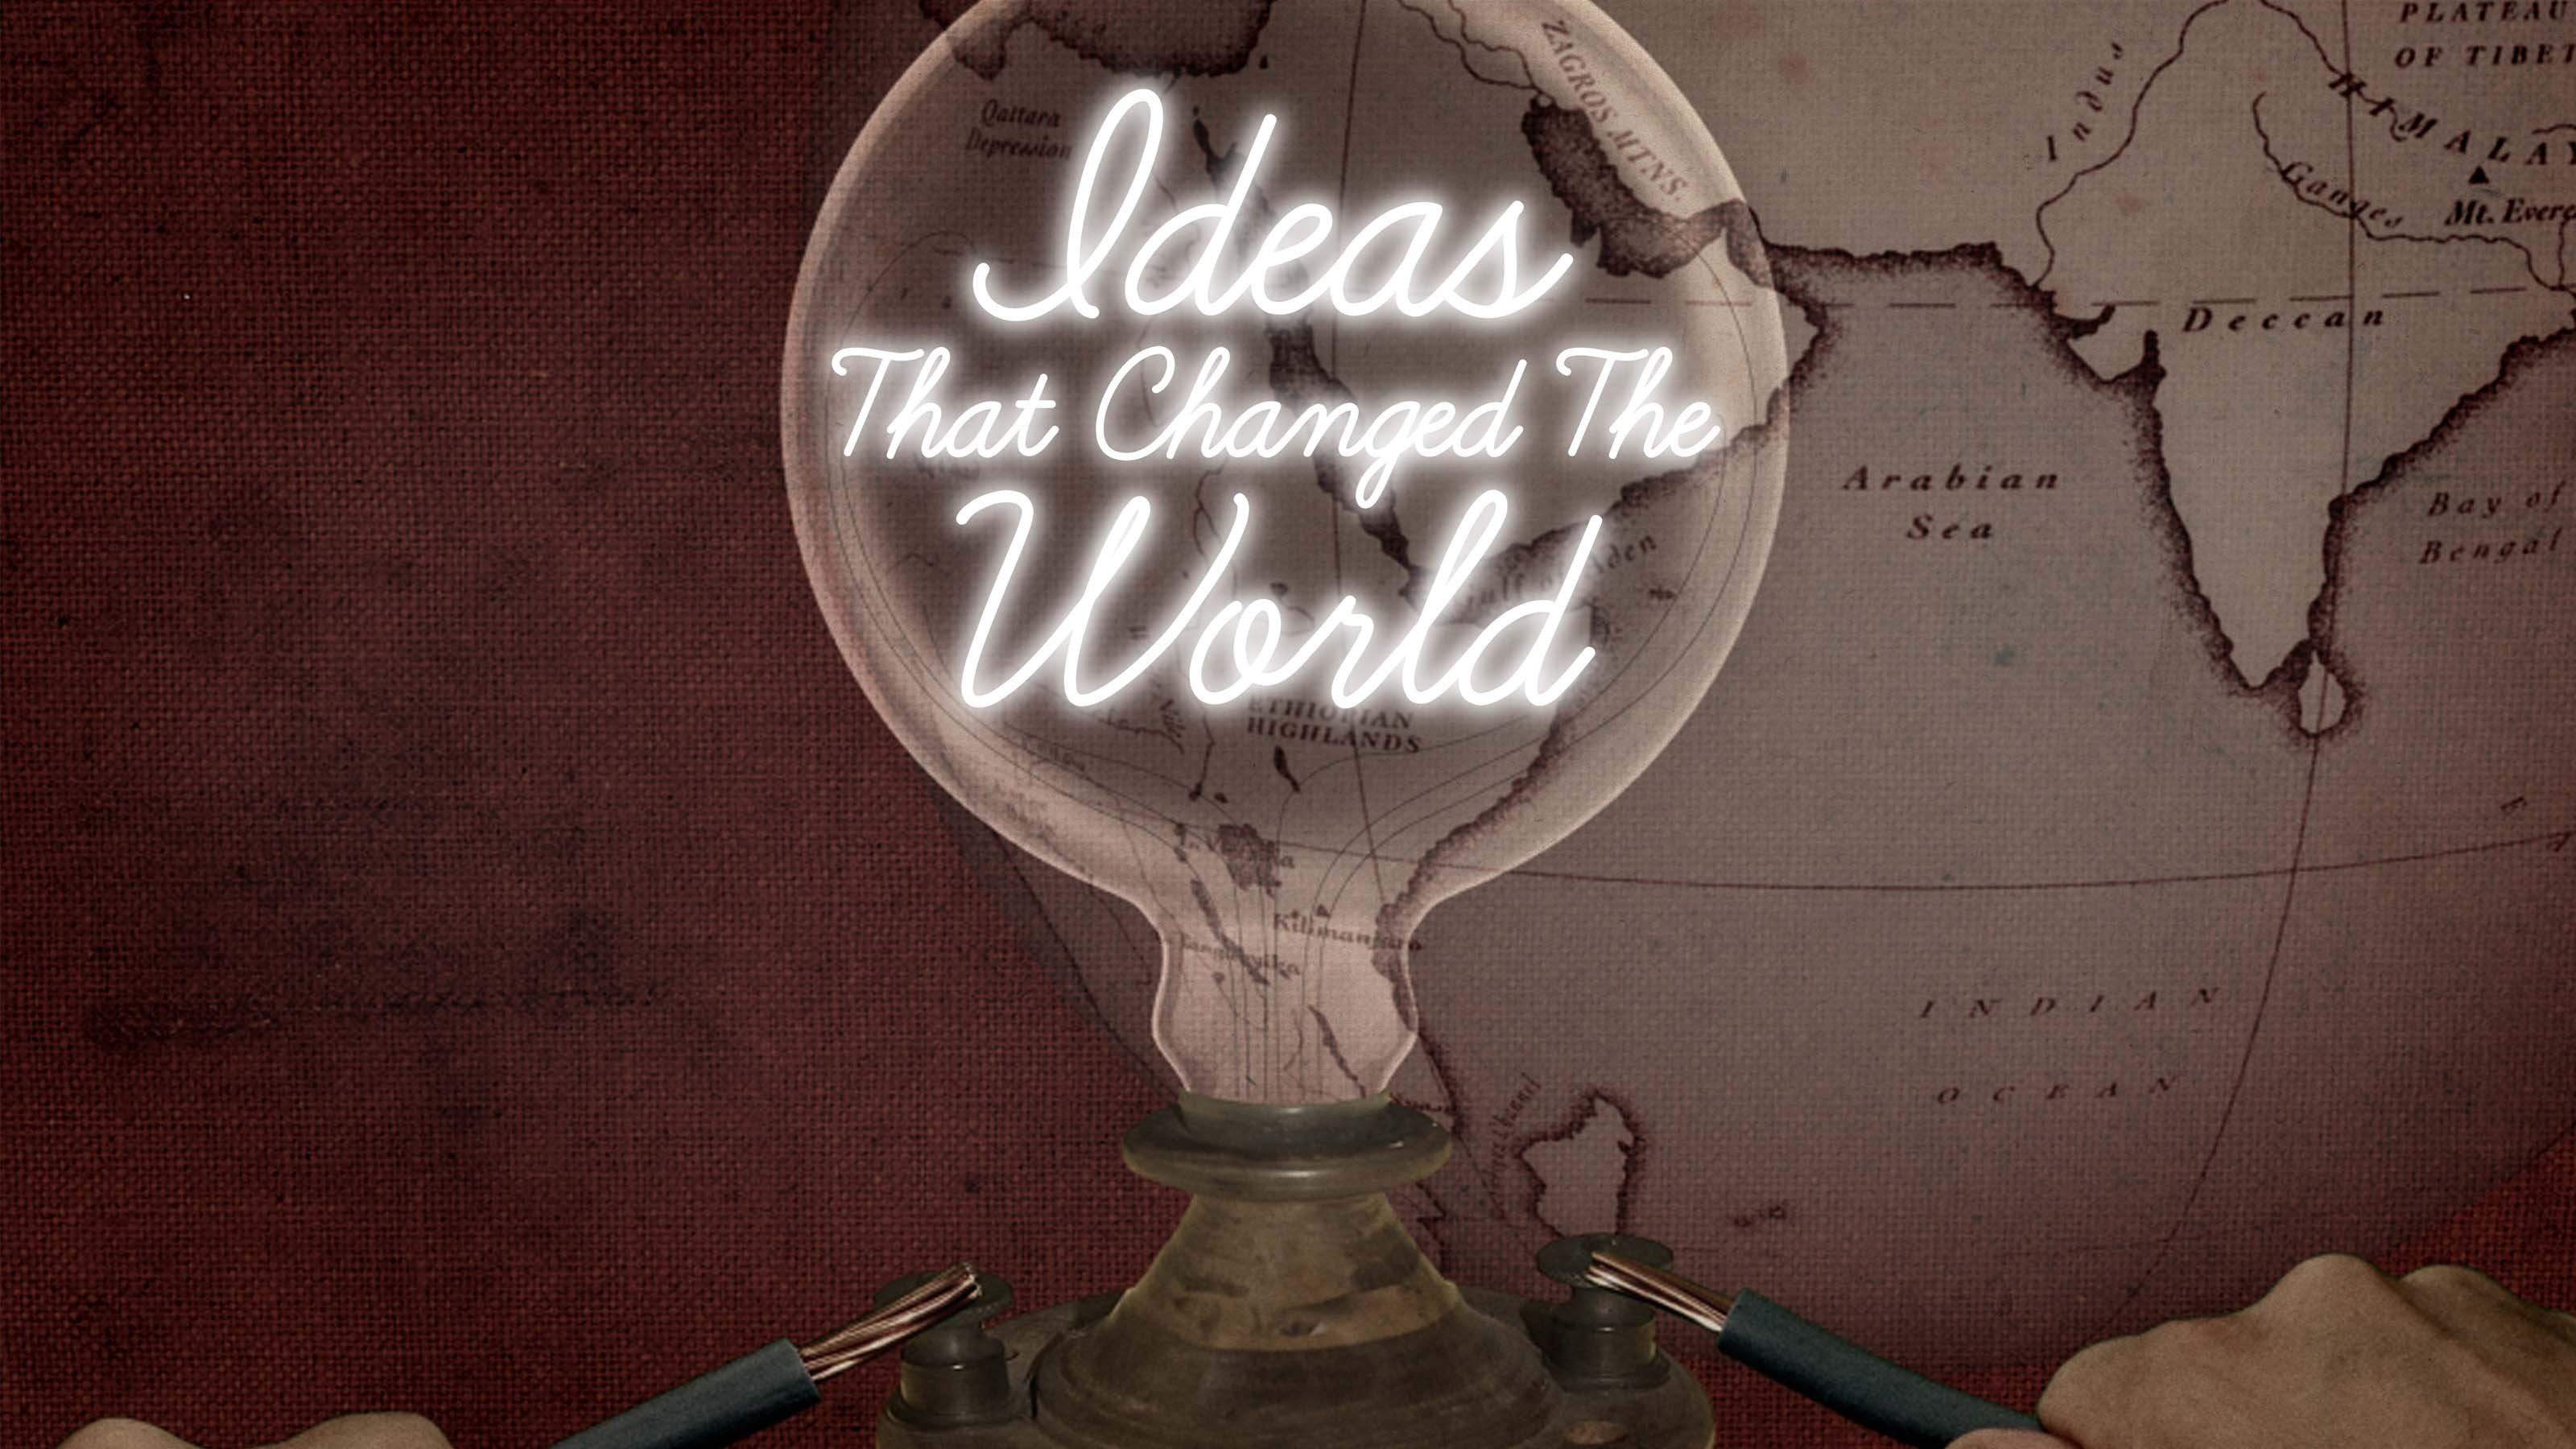 standard chartered sponsors 'ideas that changed the world' series on